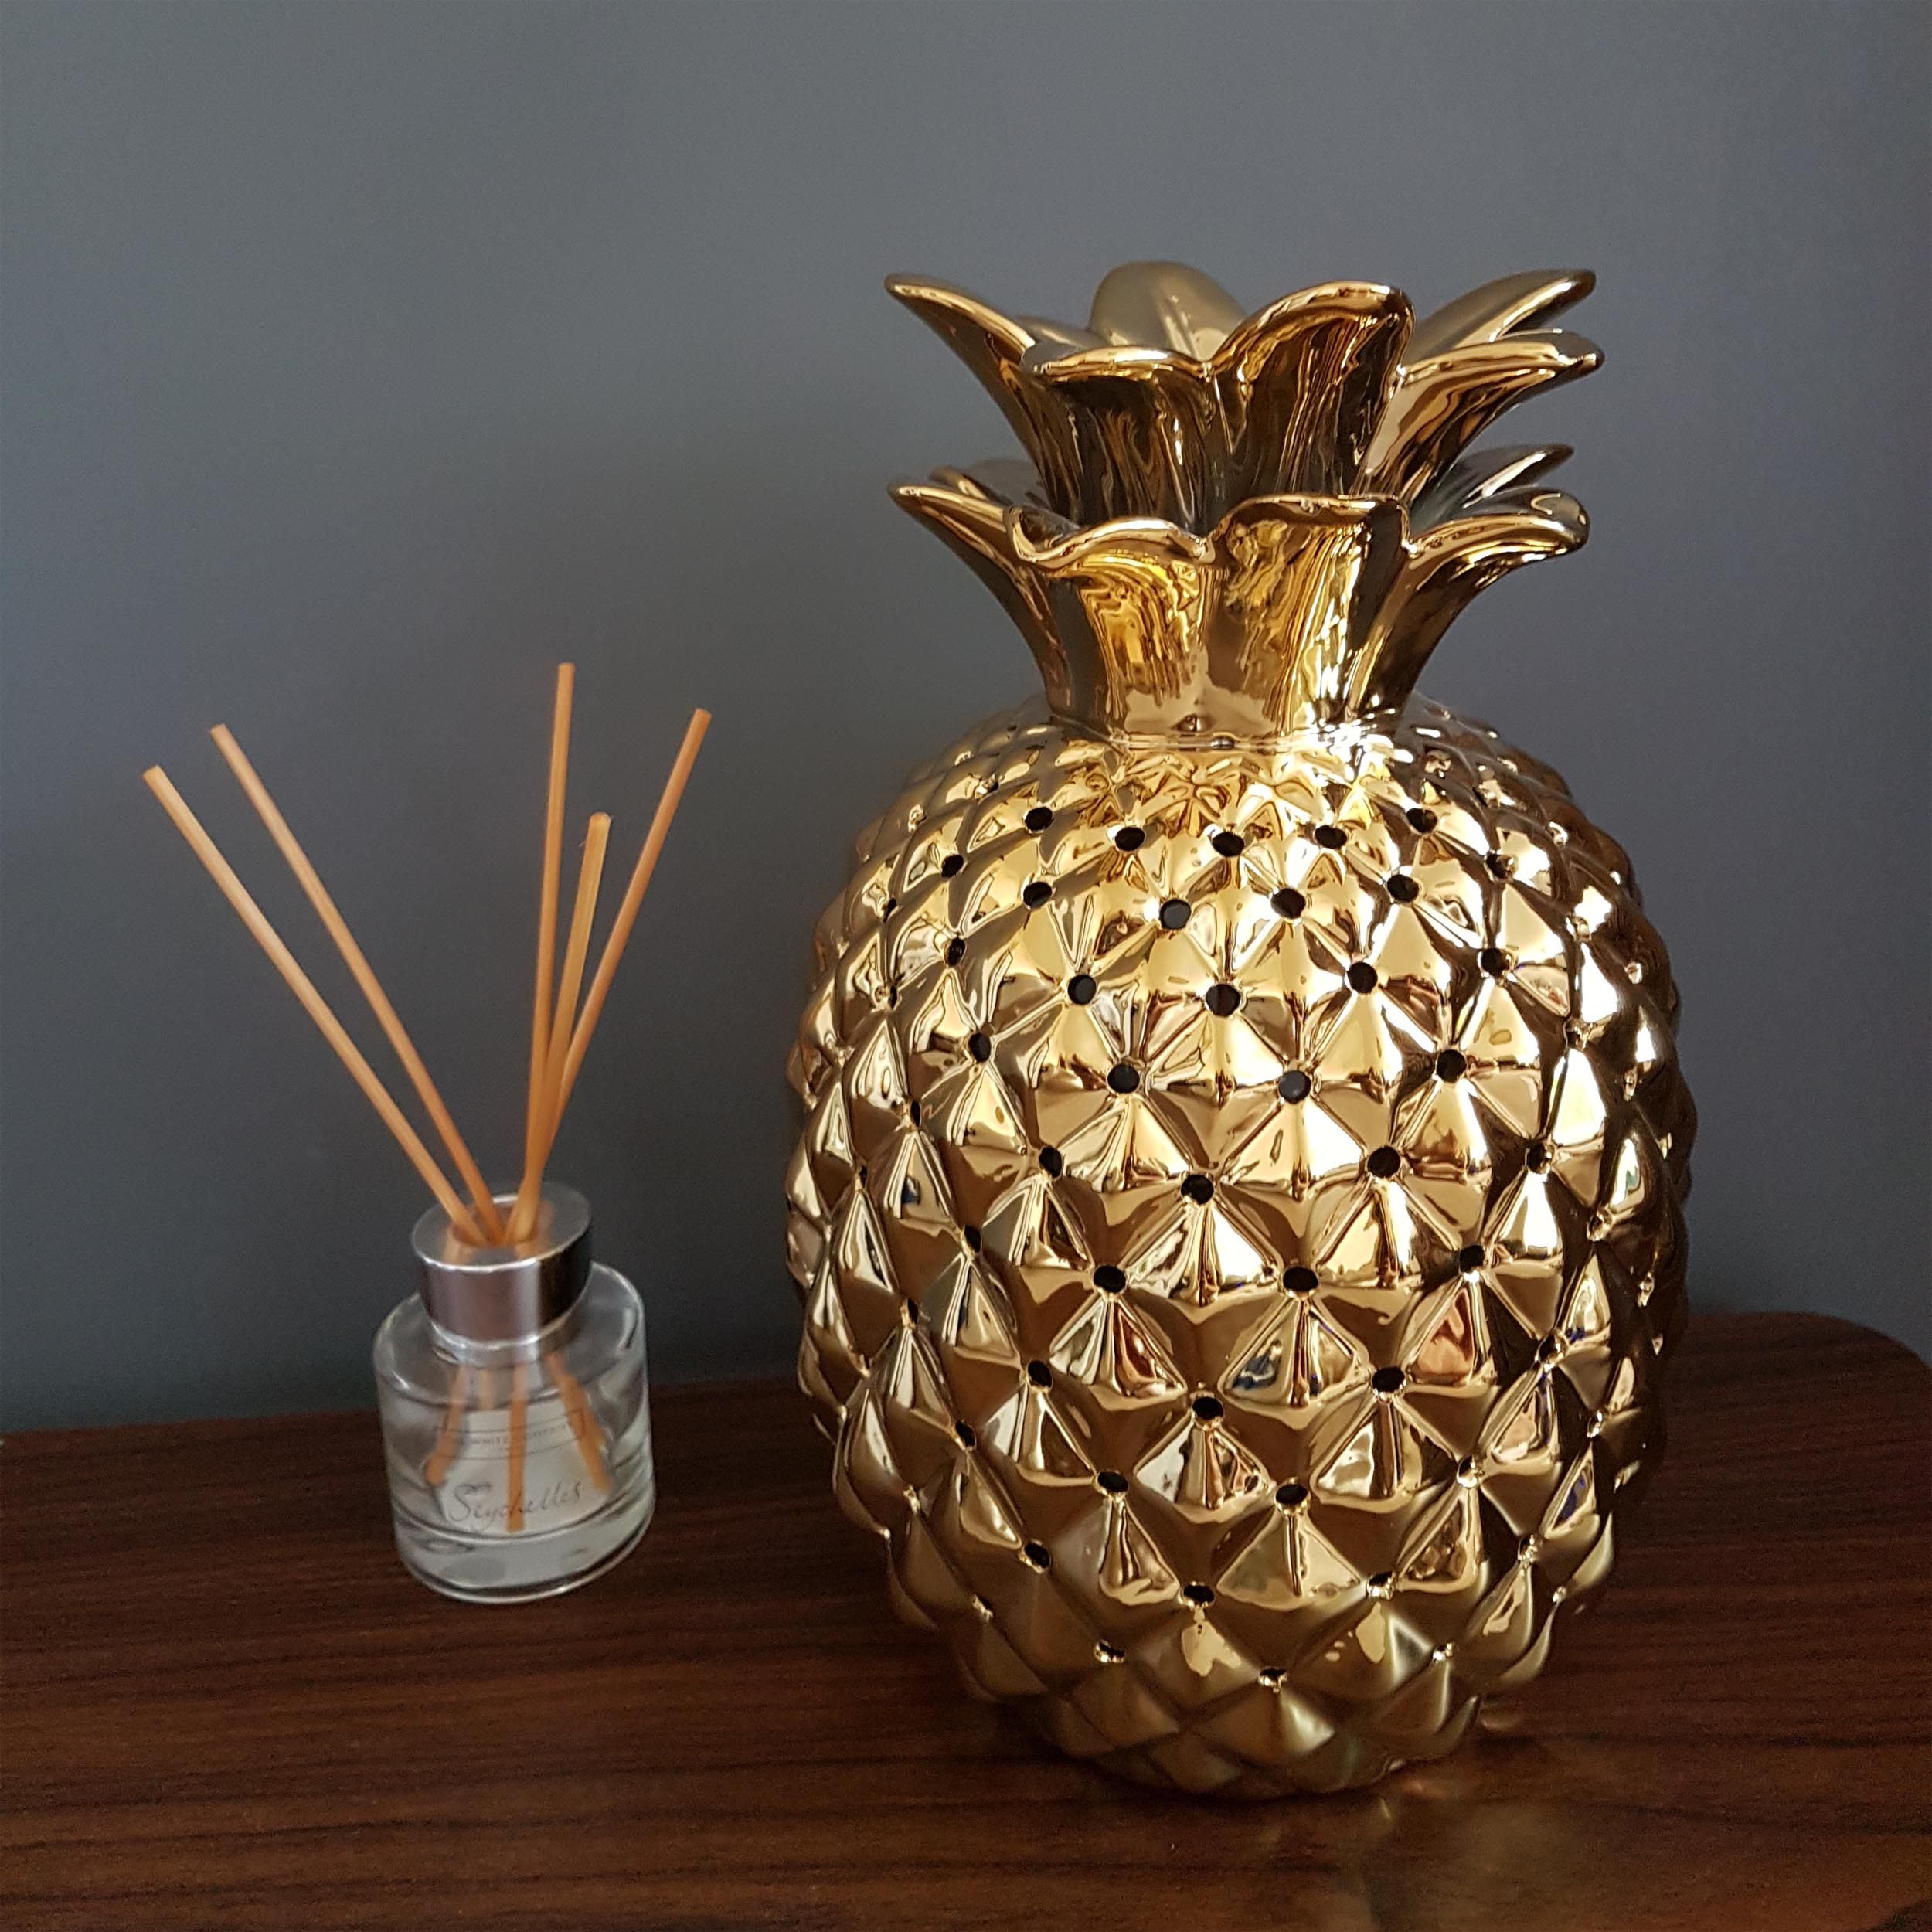 Gold Pineapple Lamp with Night Light Effect and Gold Glamour